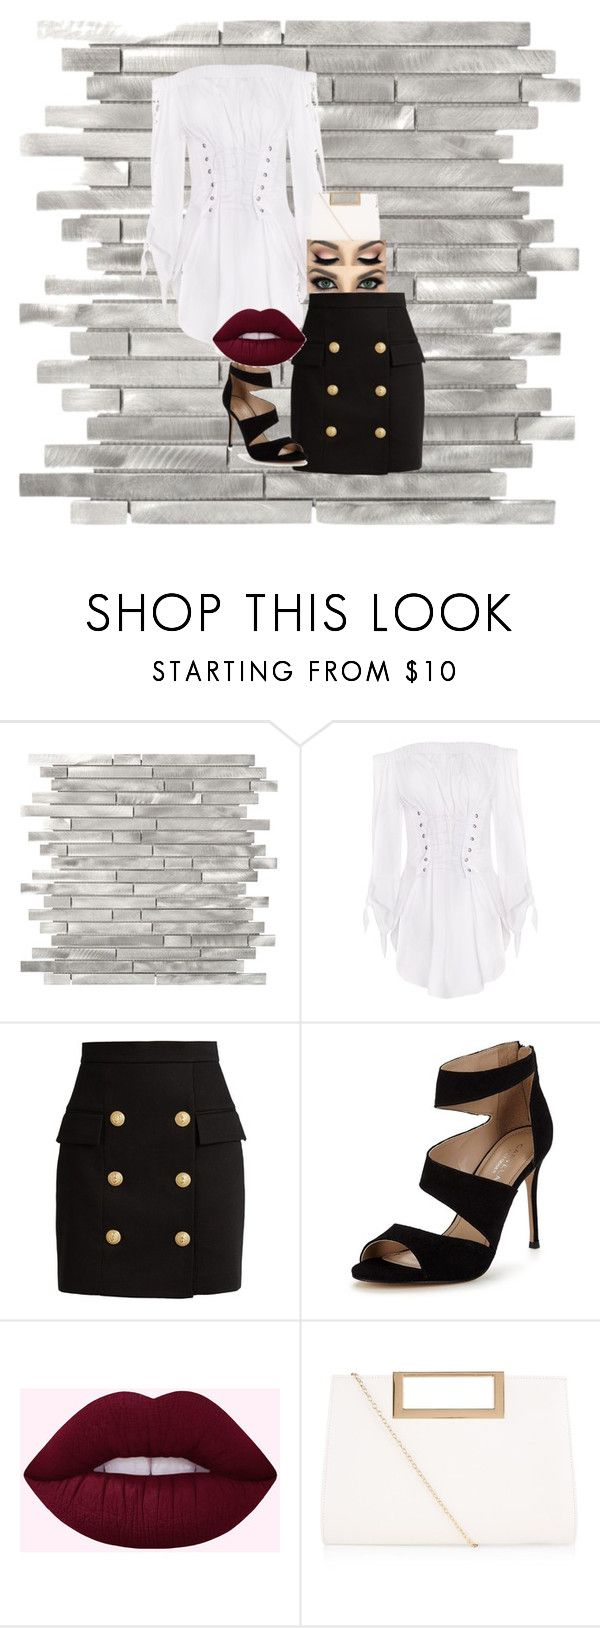 """Untitled"" by keelagirl on Polyvore featuring Balmain, Carvela and New Look"